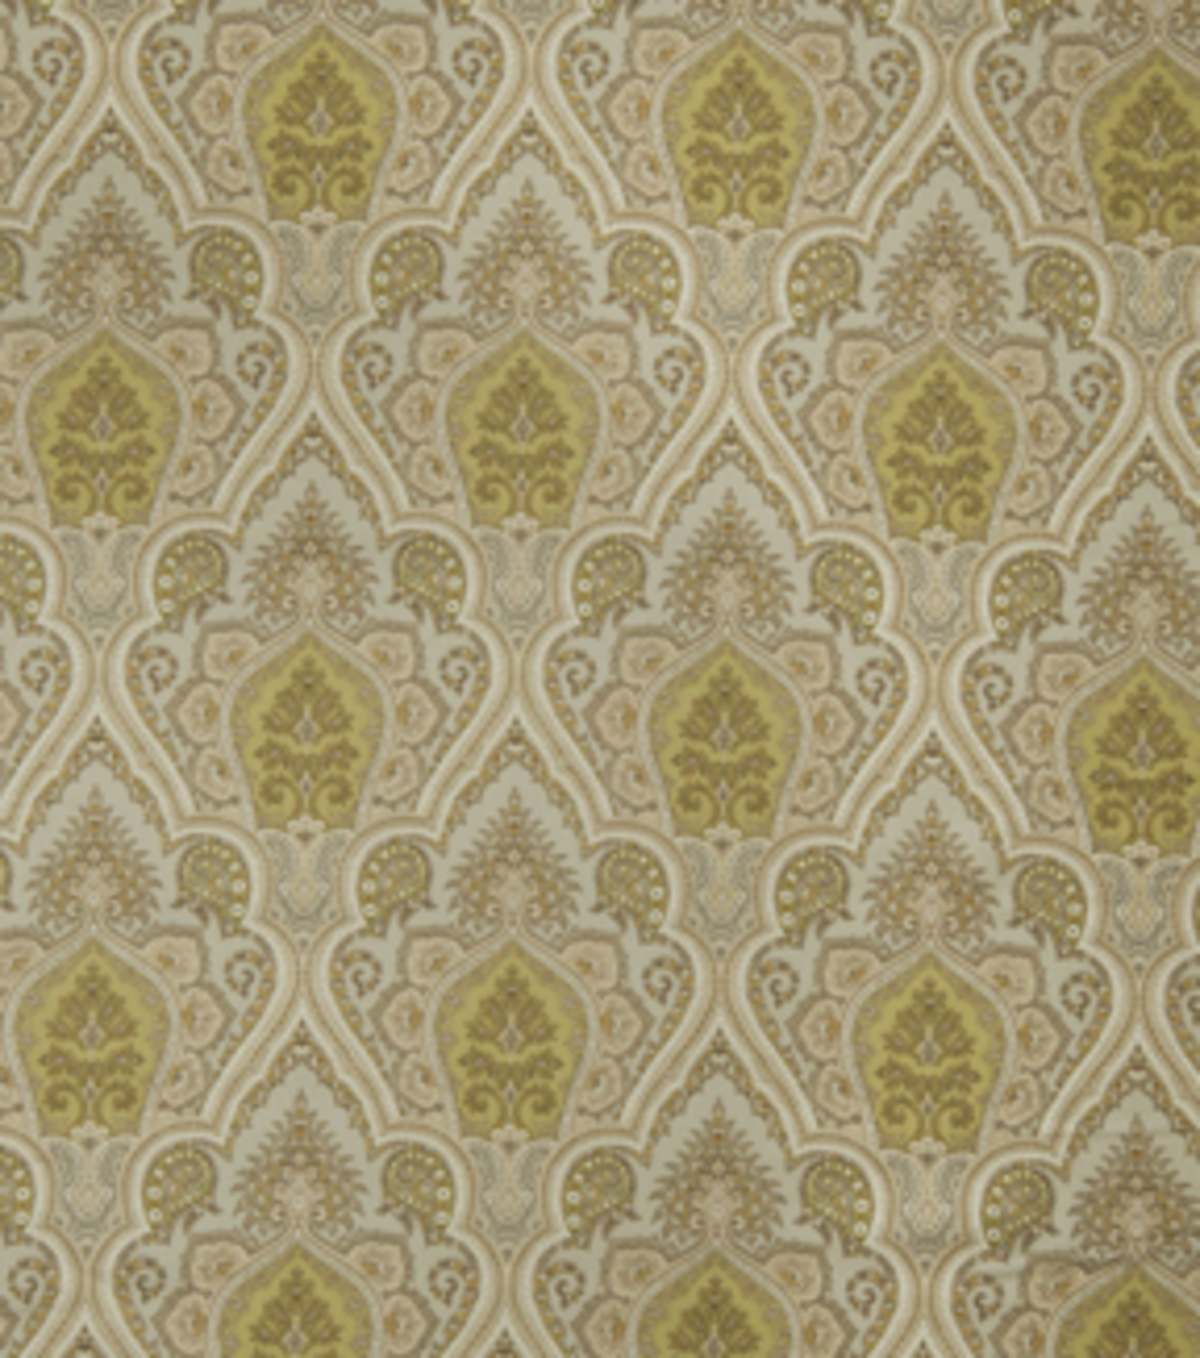 "Home Decor 8""x8"" Fabric Swatch-Eaton Square Garfunkel Mineral"